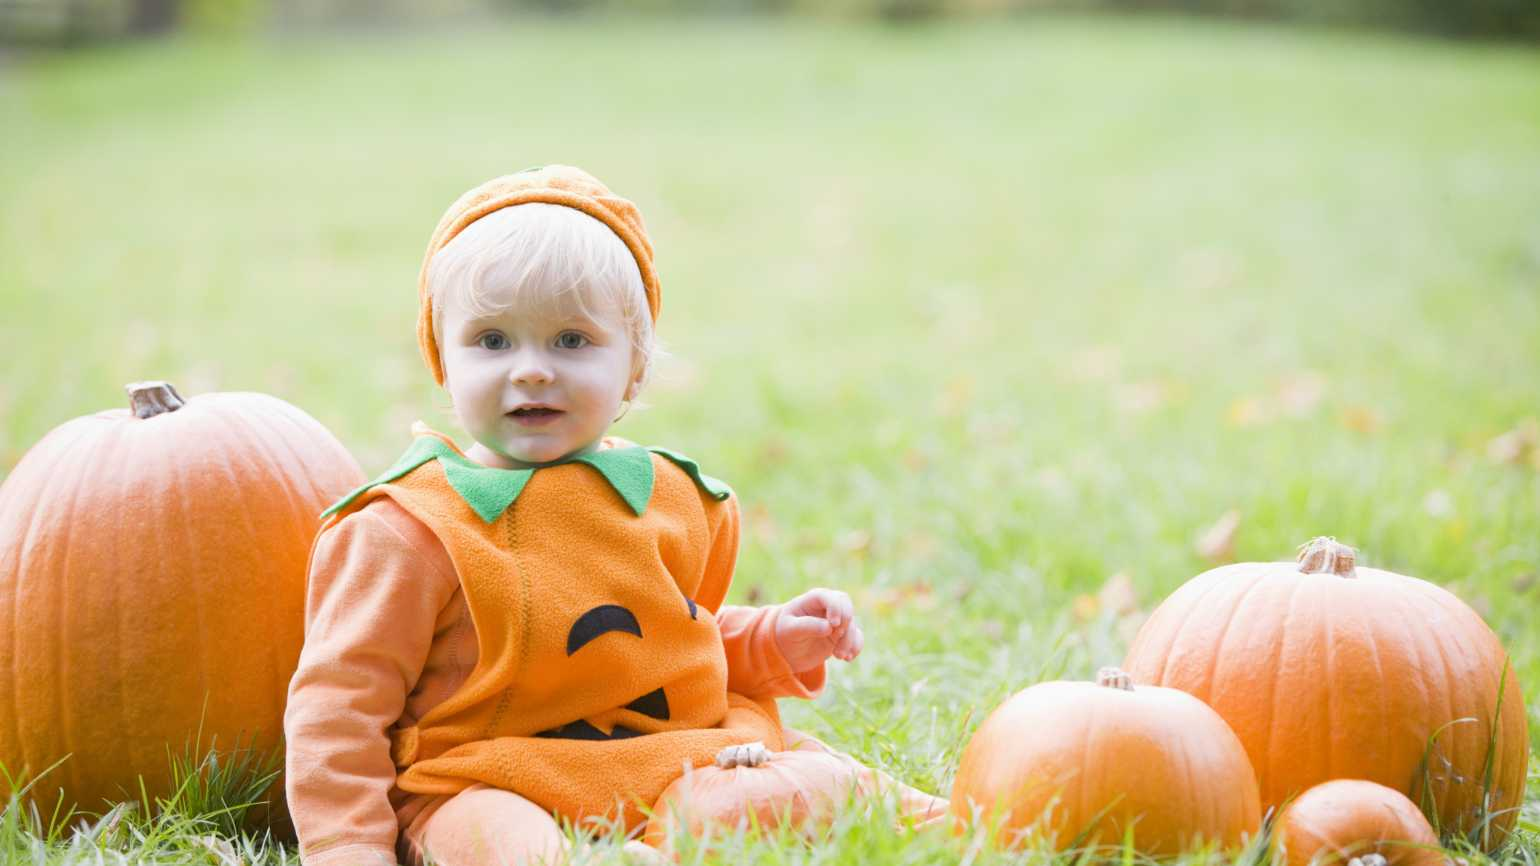 Child in a Halloween pumpkin costume in a field of pumpkins